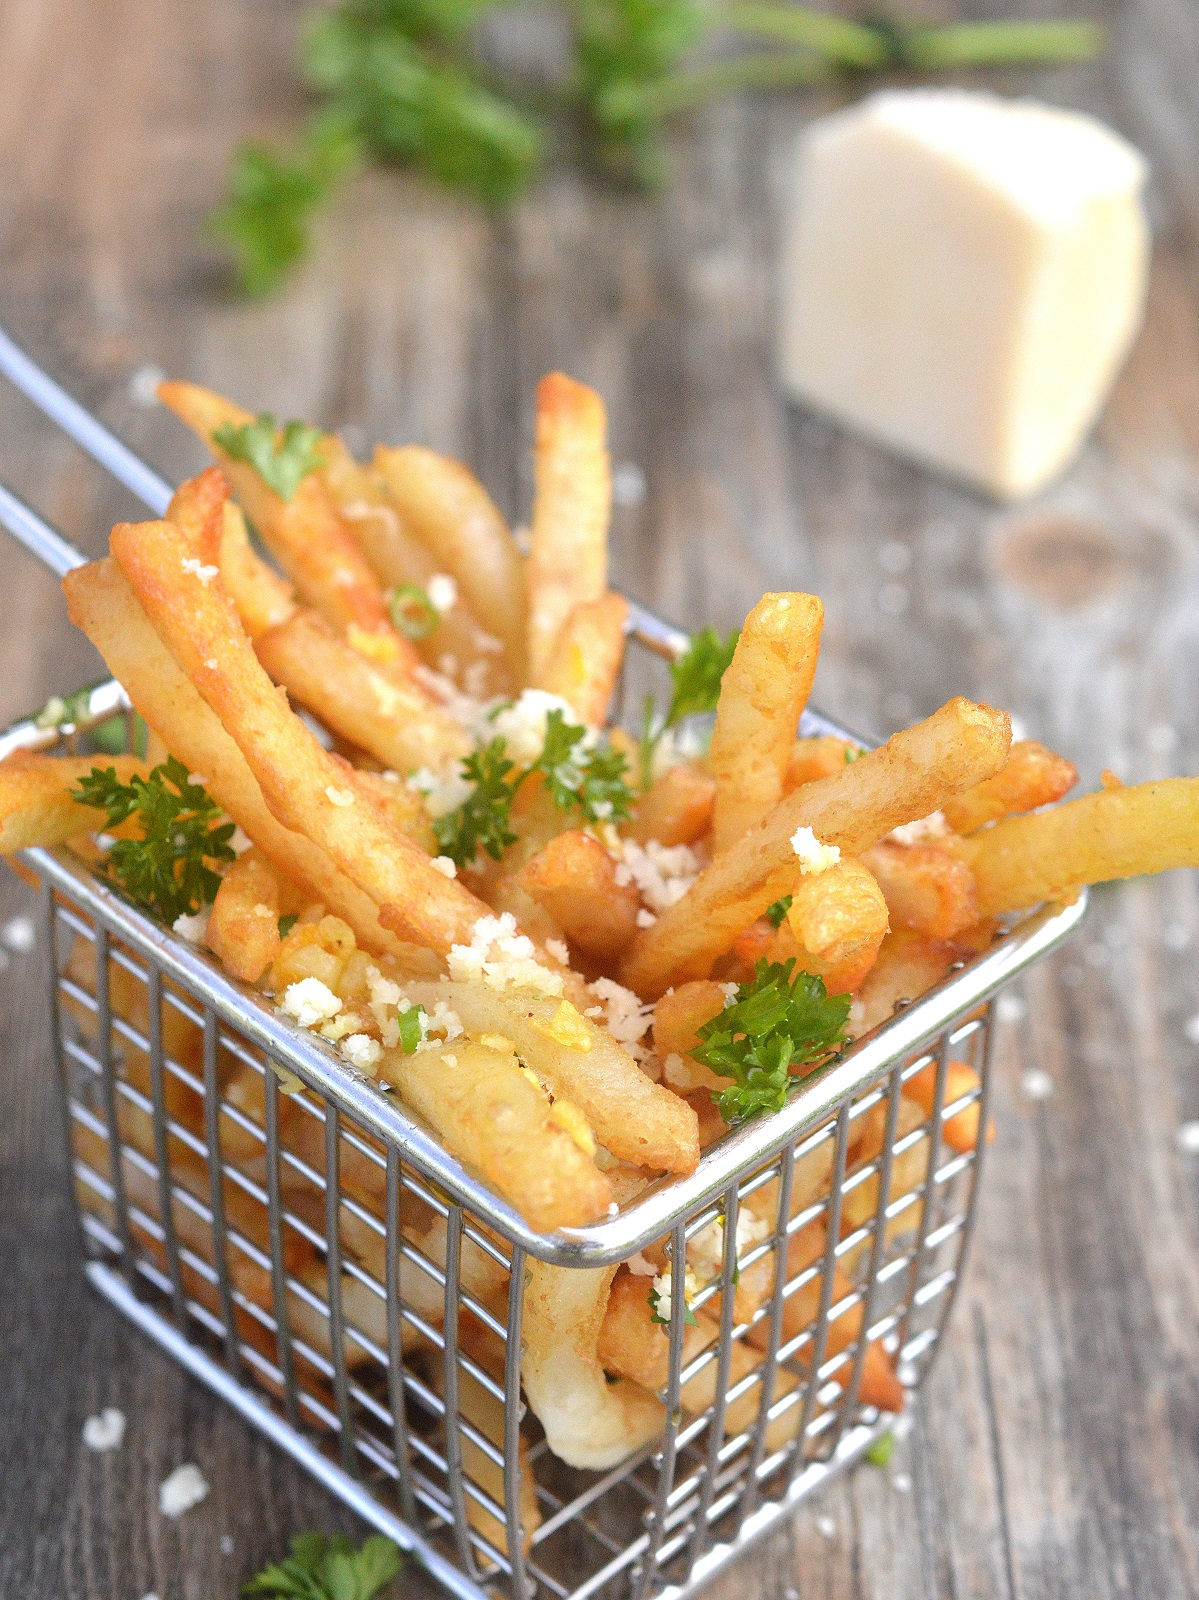 Beer Battered Garlic & Parmesan French Fries Easy to make using frozen beer battered fries! These are really good!